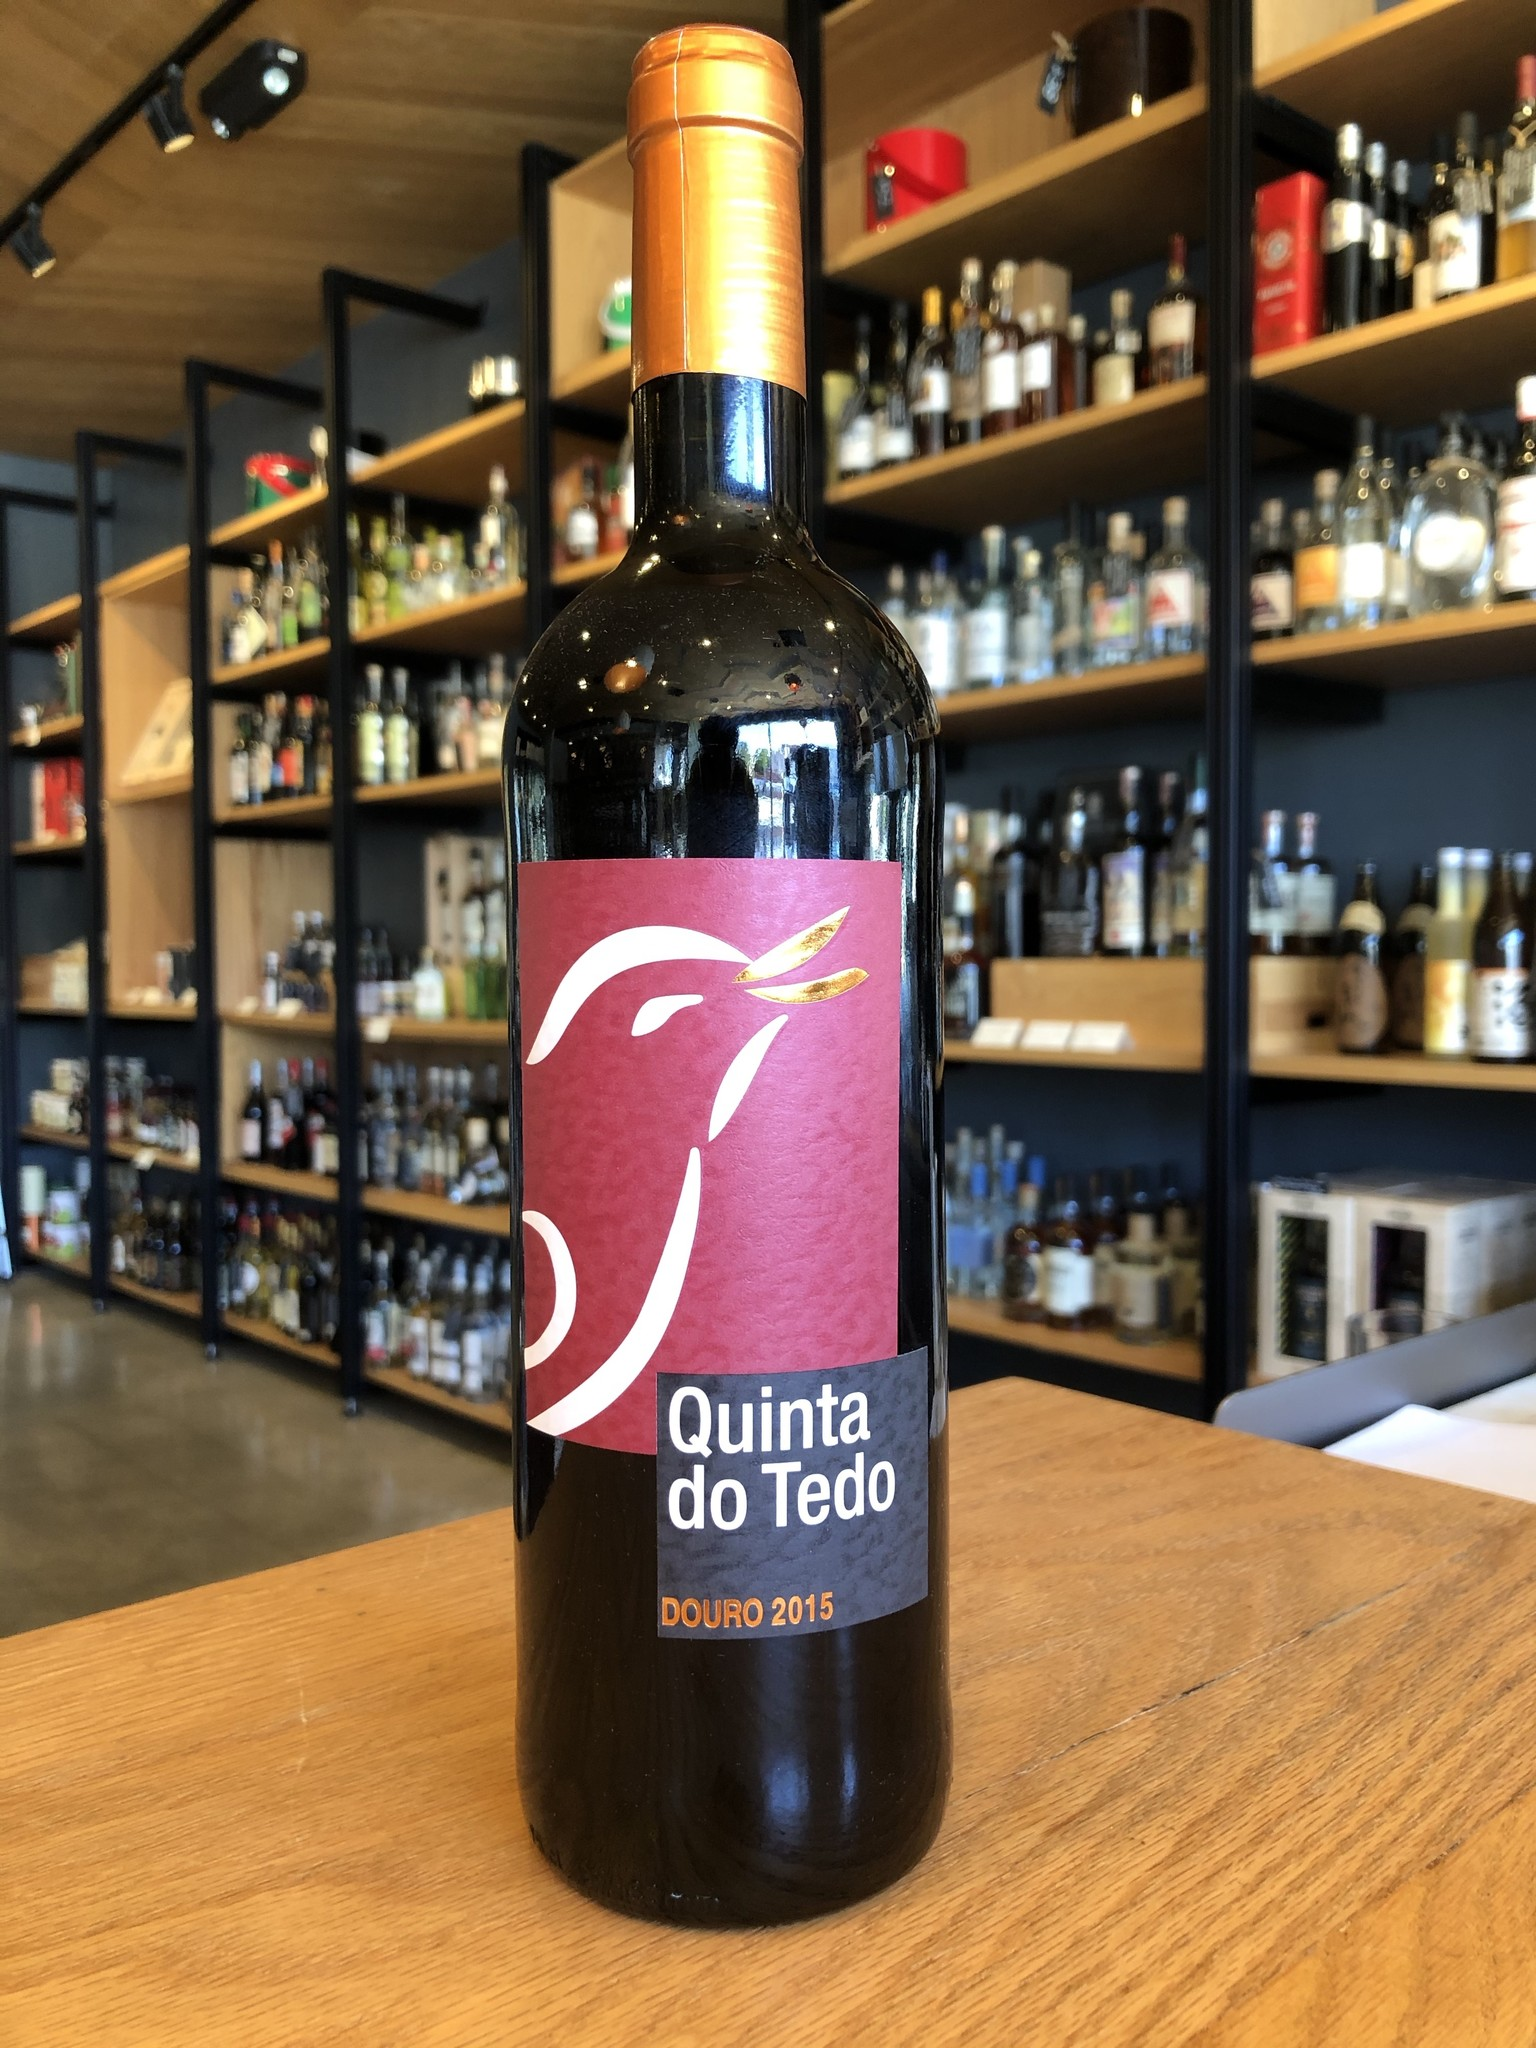 Quinta do Tedo 2015 Quinta do Tedo Douro Red 750ml